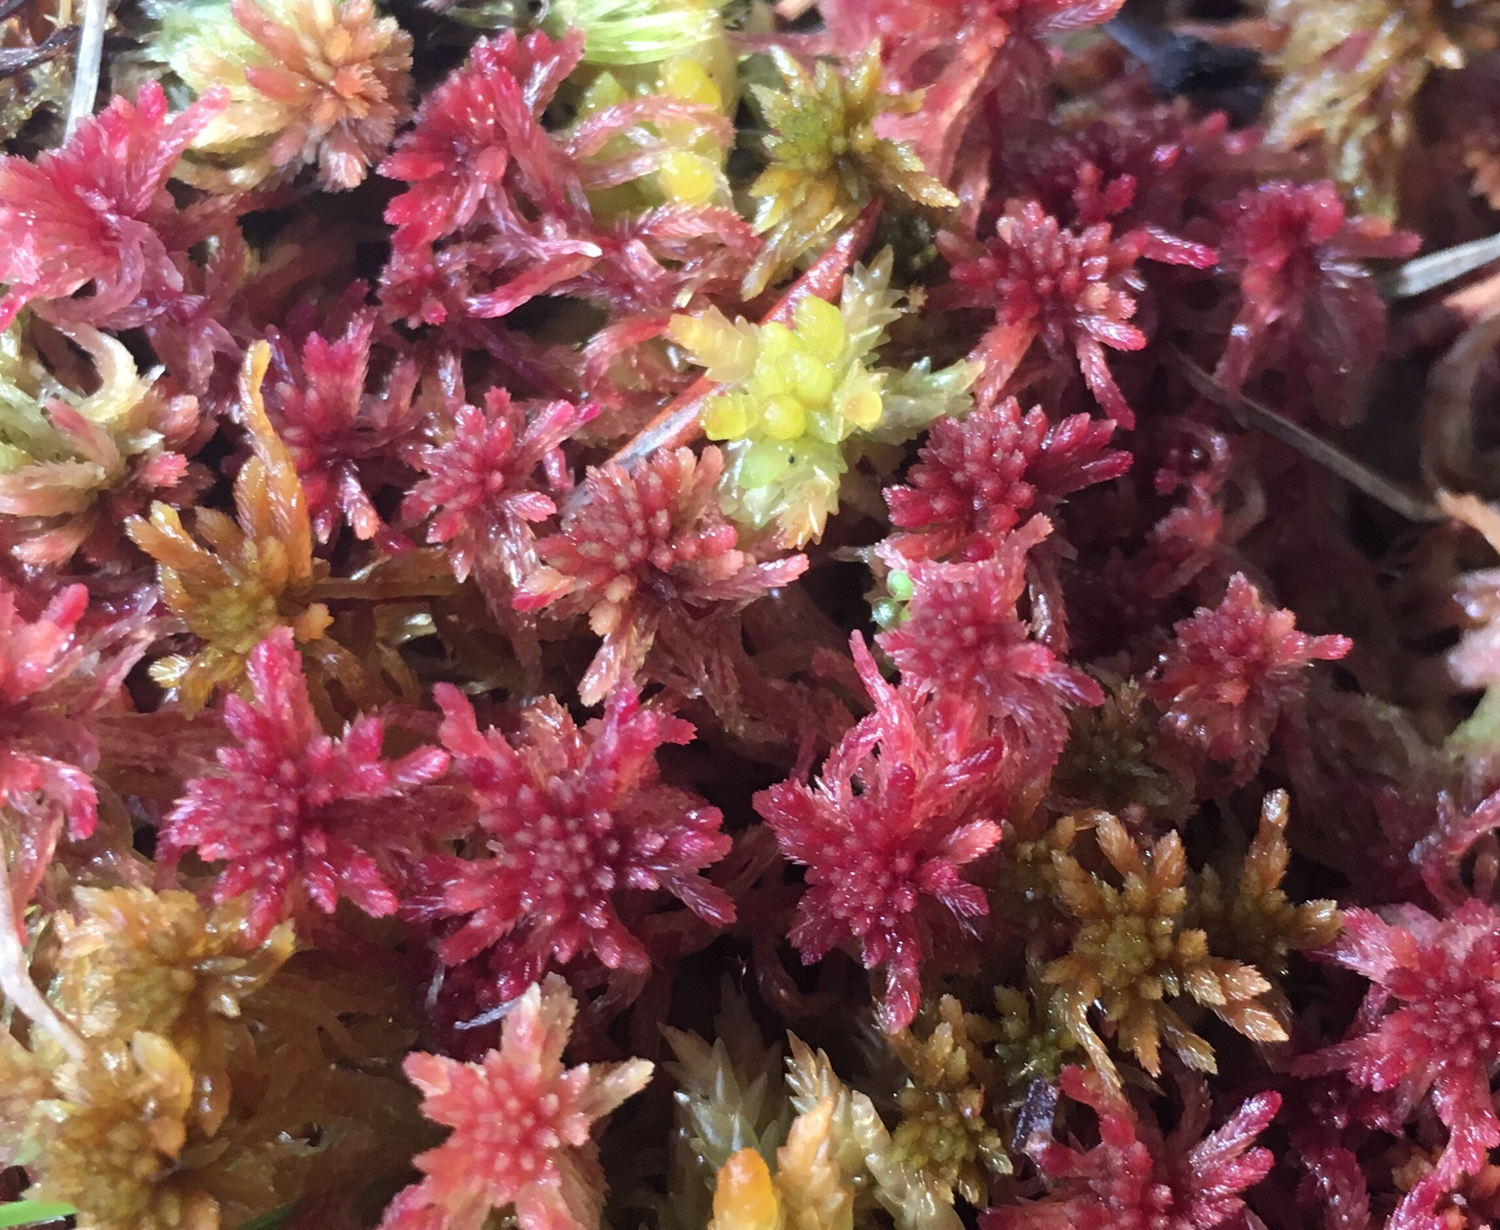 Live Green/ Red/ Brown Species Sphagnum Moss mix 25 grams sample size